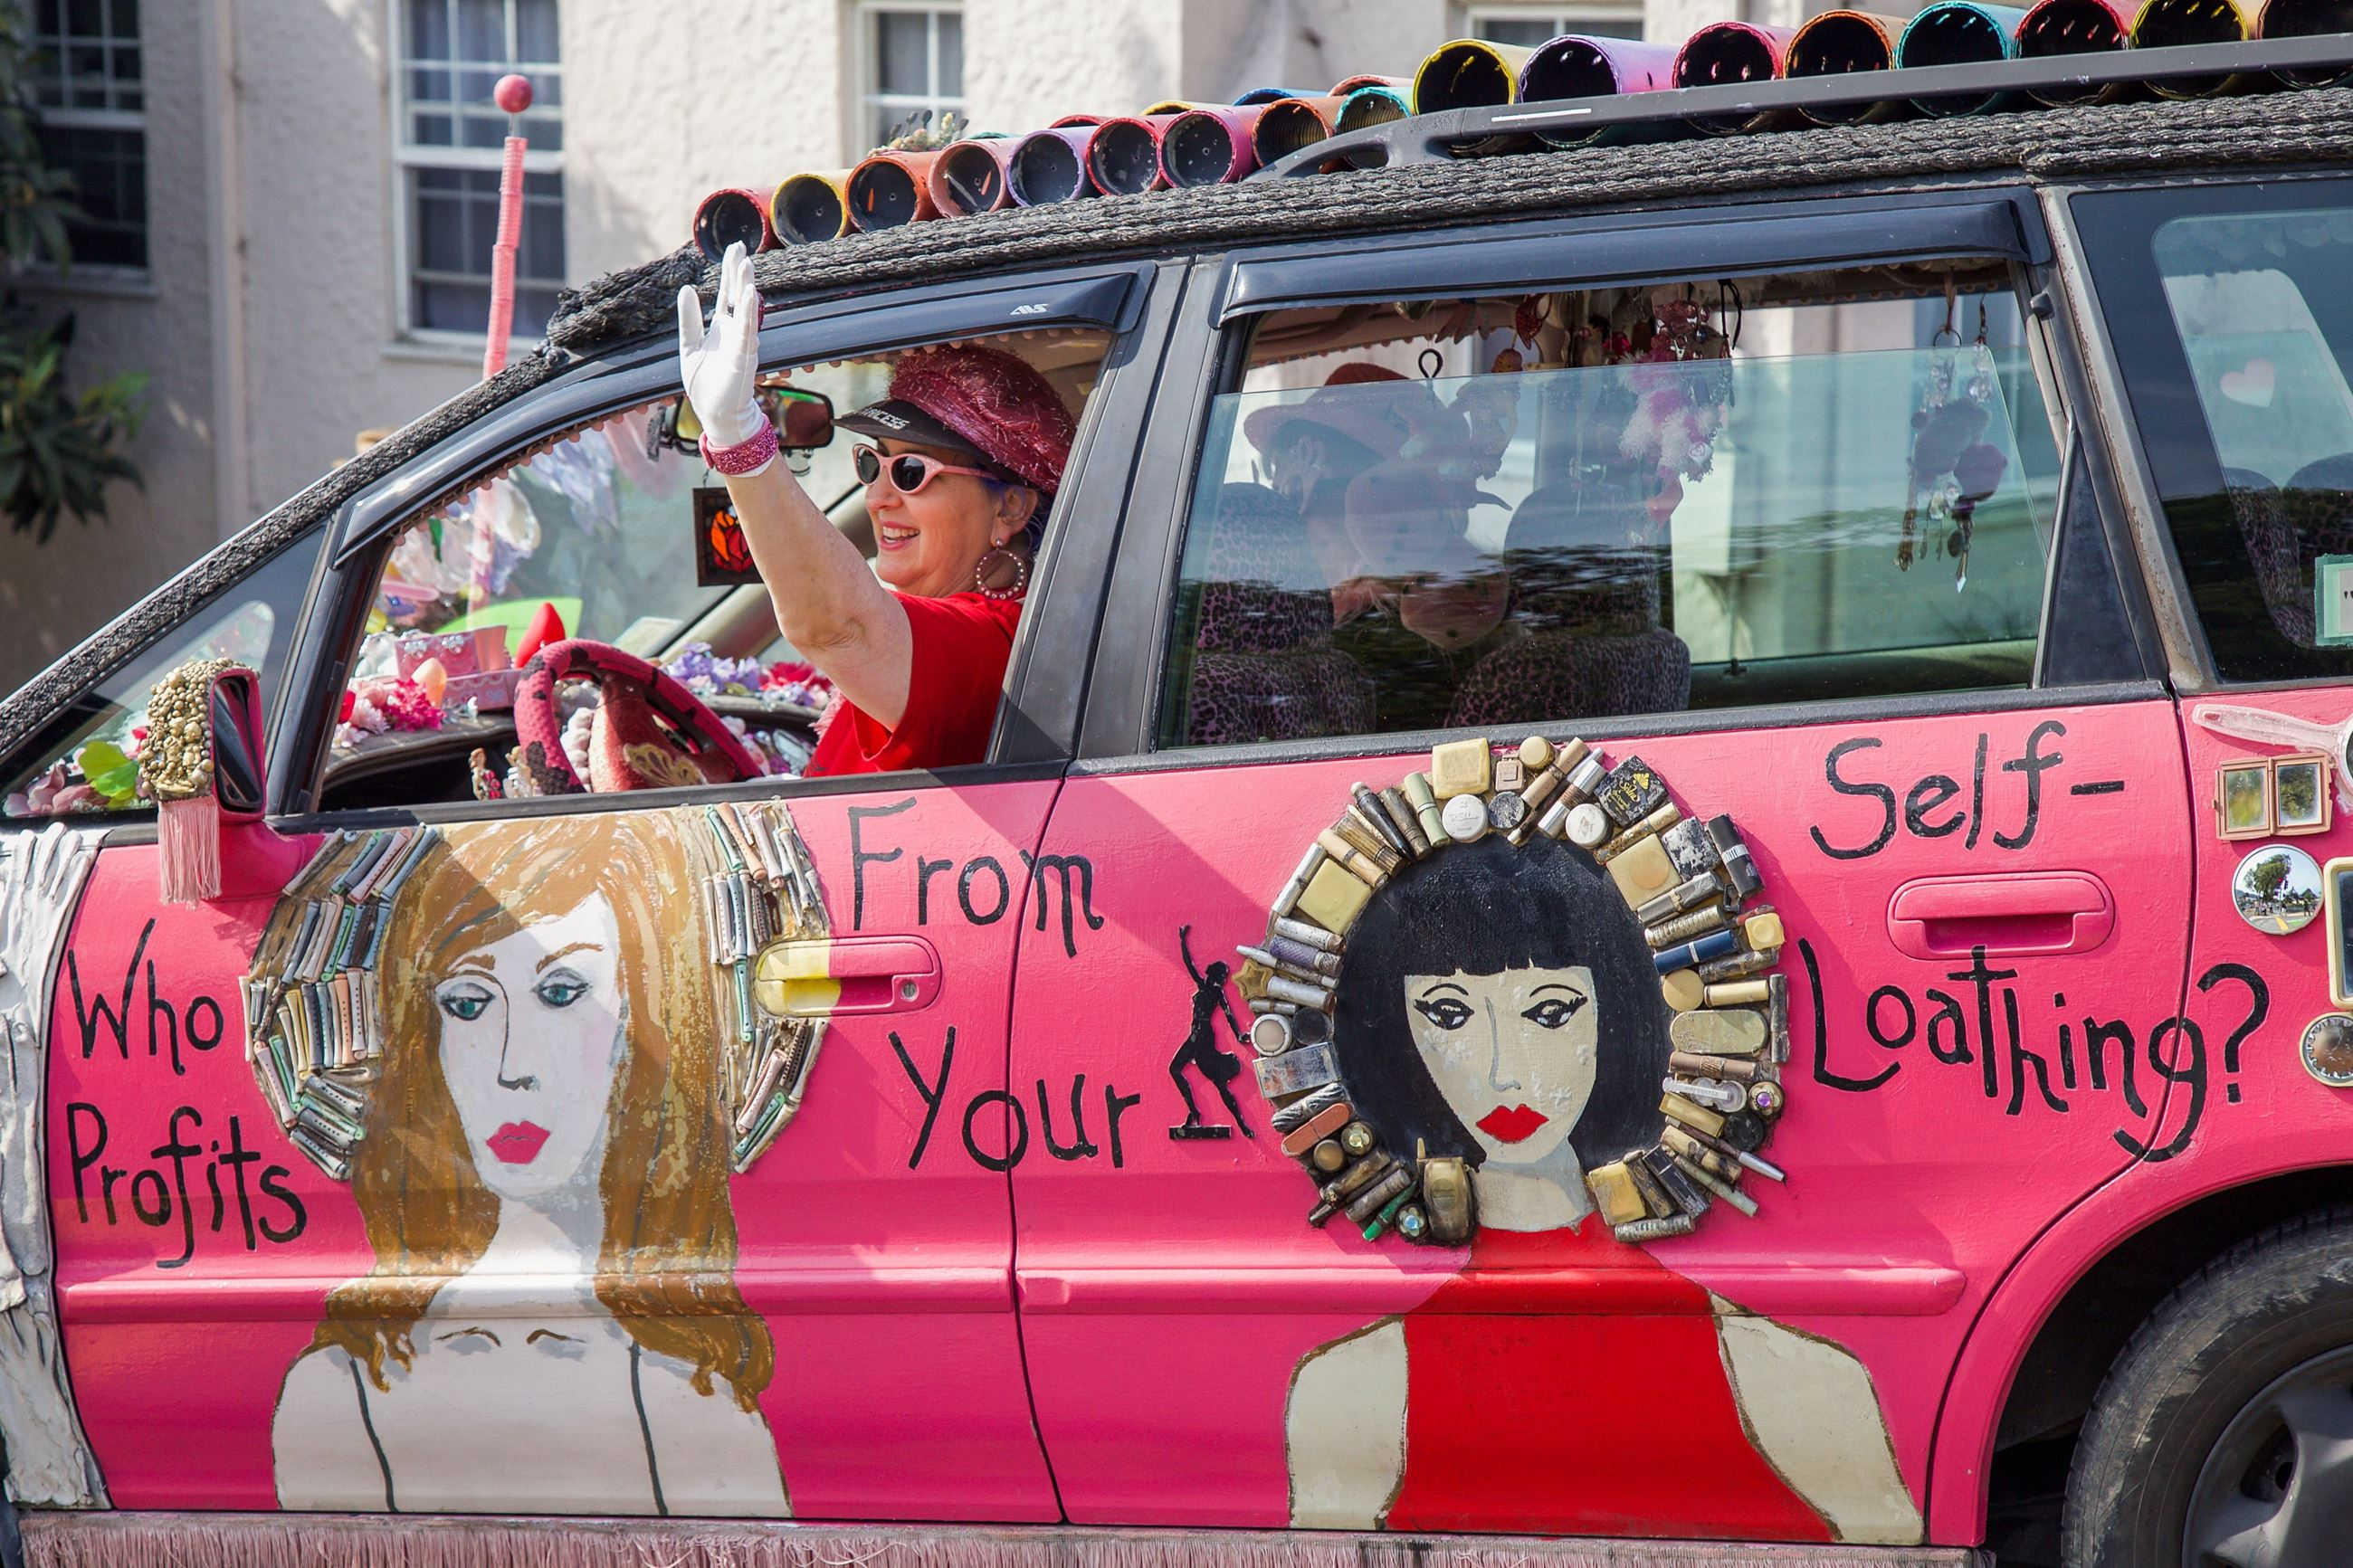 266 Art car 1 in Parade - Photo by Marin Stuart